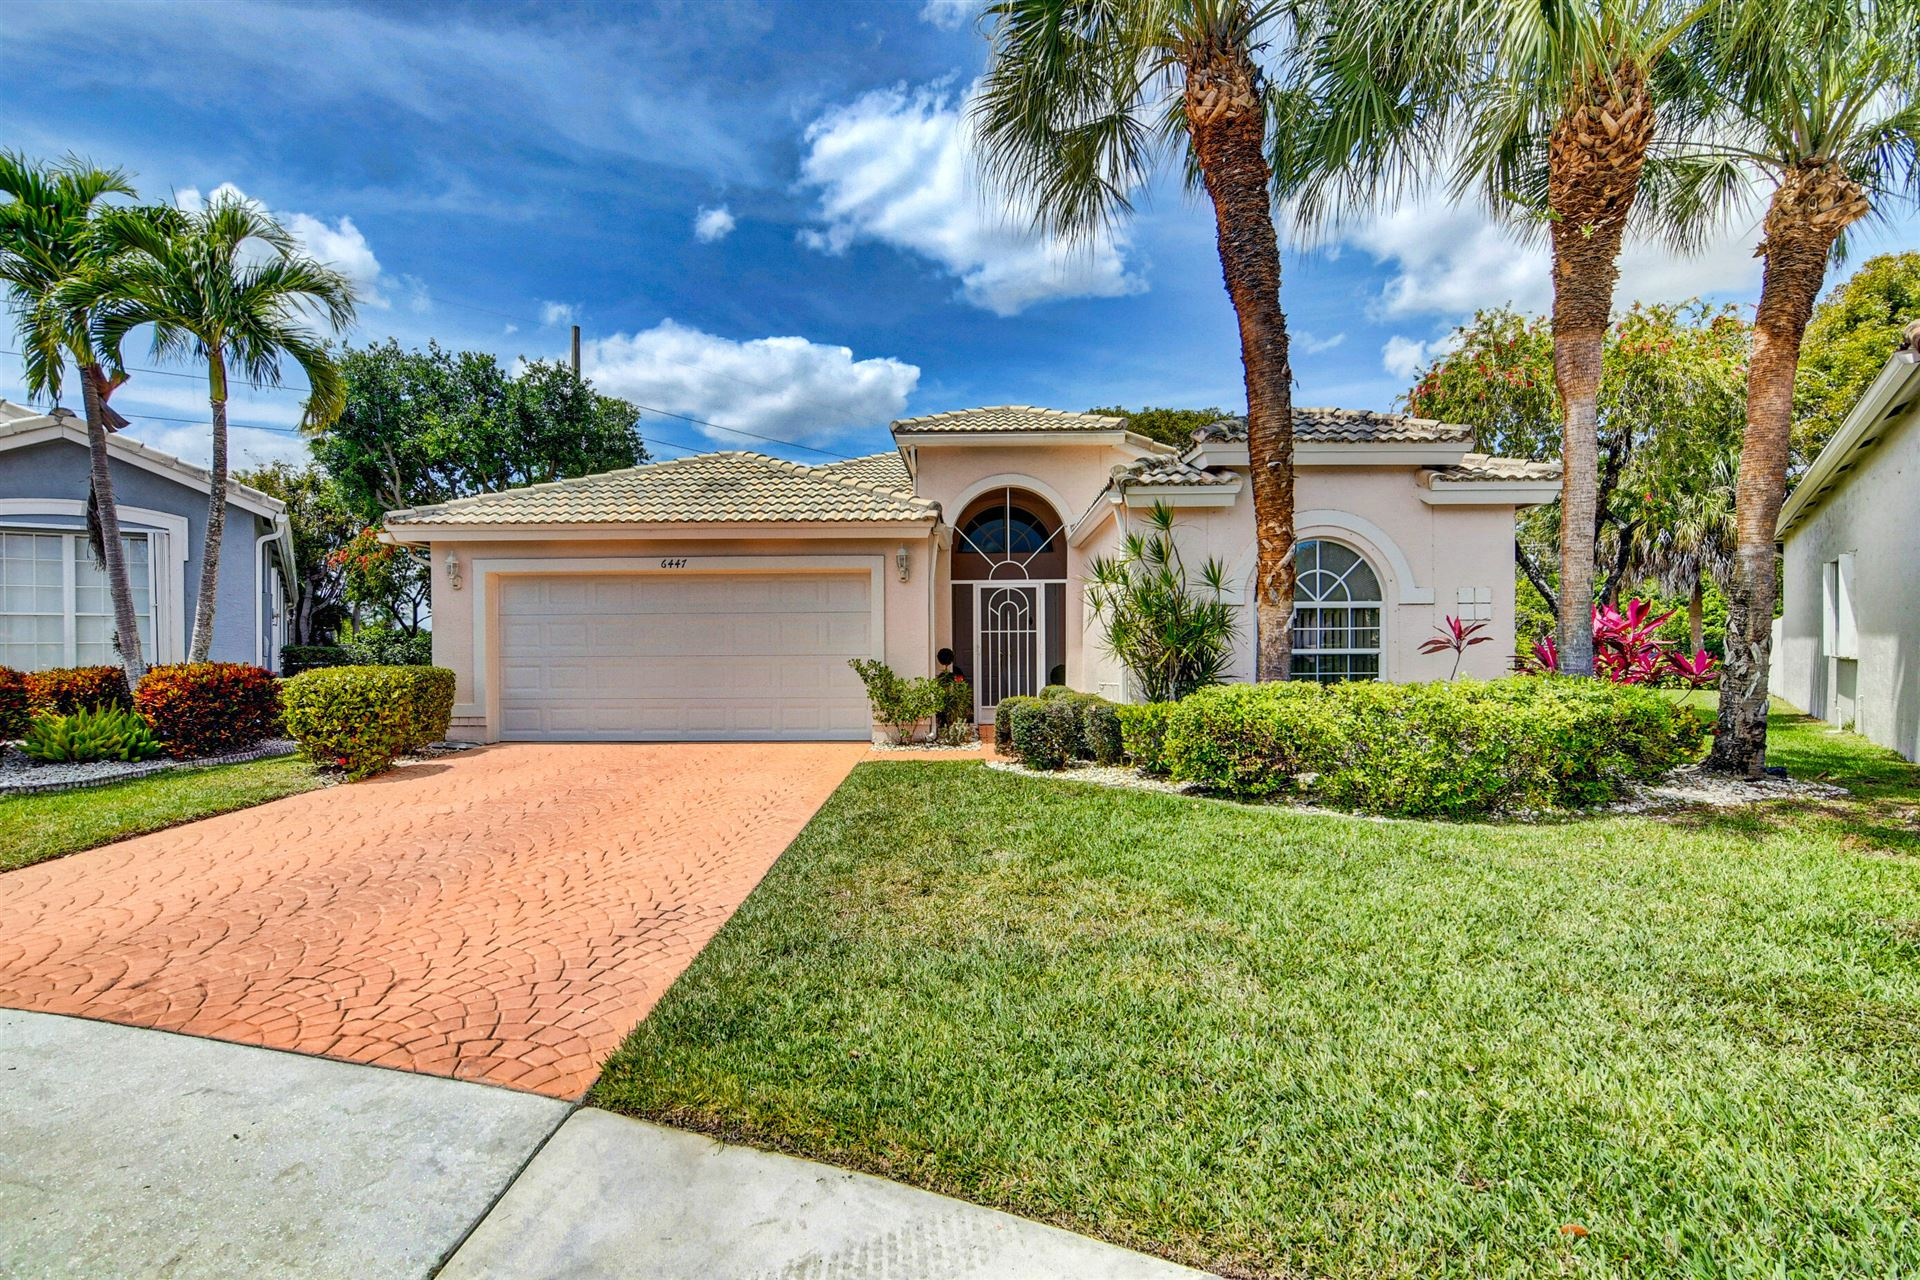 6447 Emerald Breeze Way, Boynton Beach, FL 33437 - #: RX-10706742